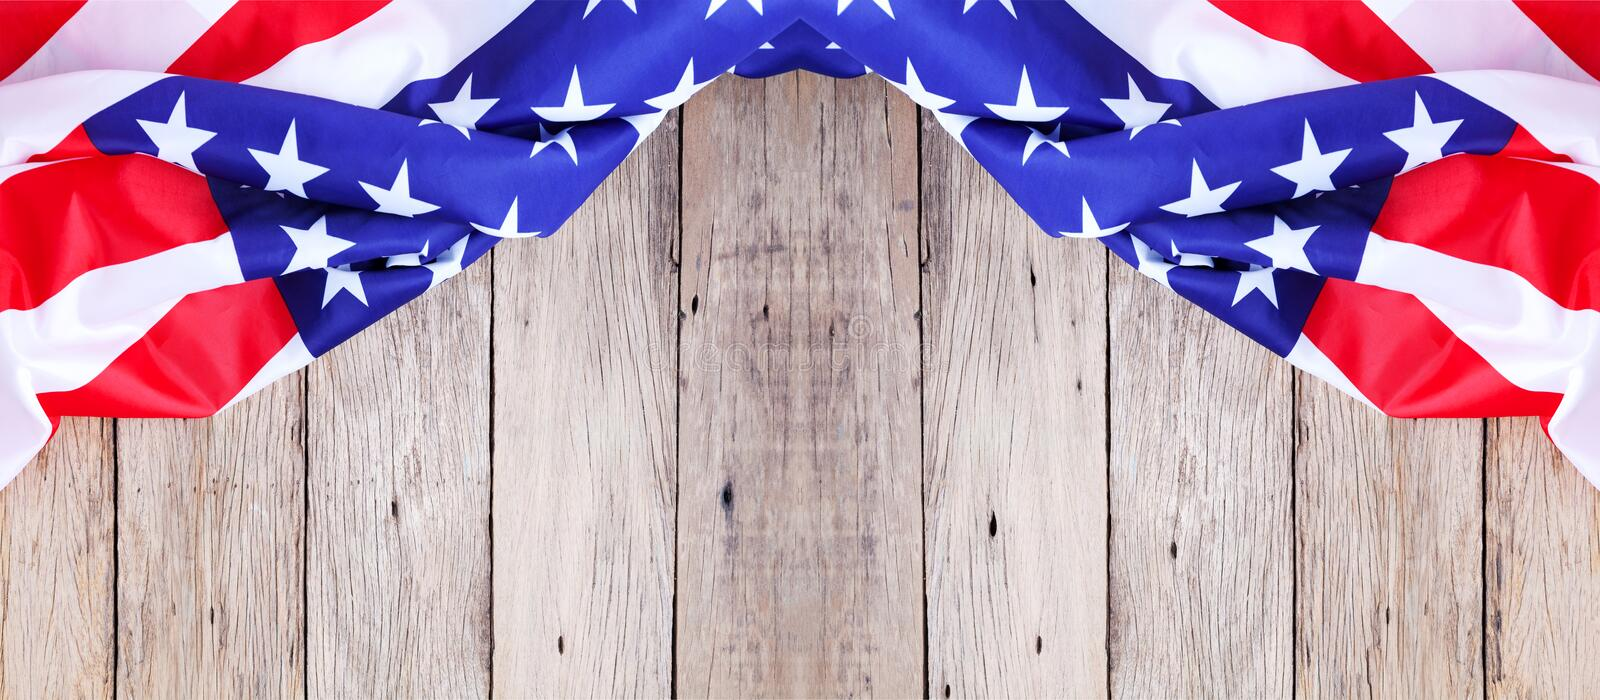 American flag on old wood background for add text Memorial Day o stock photos